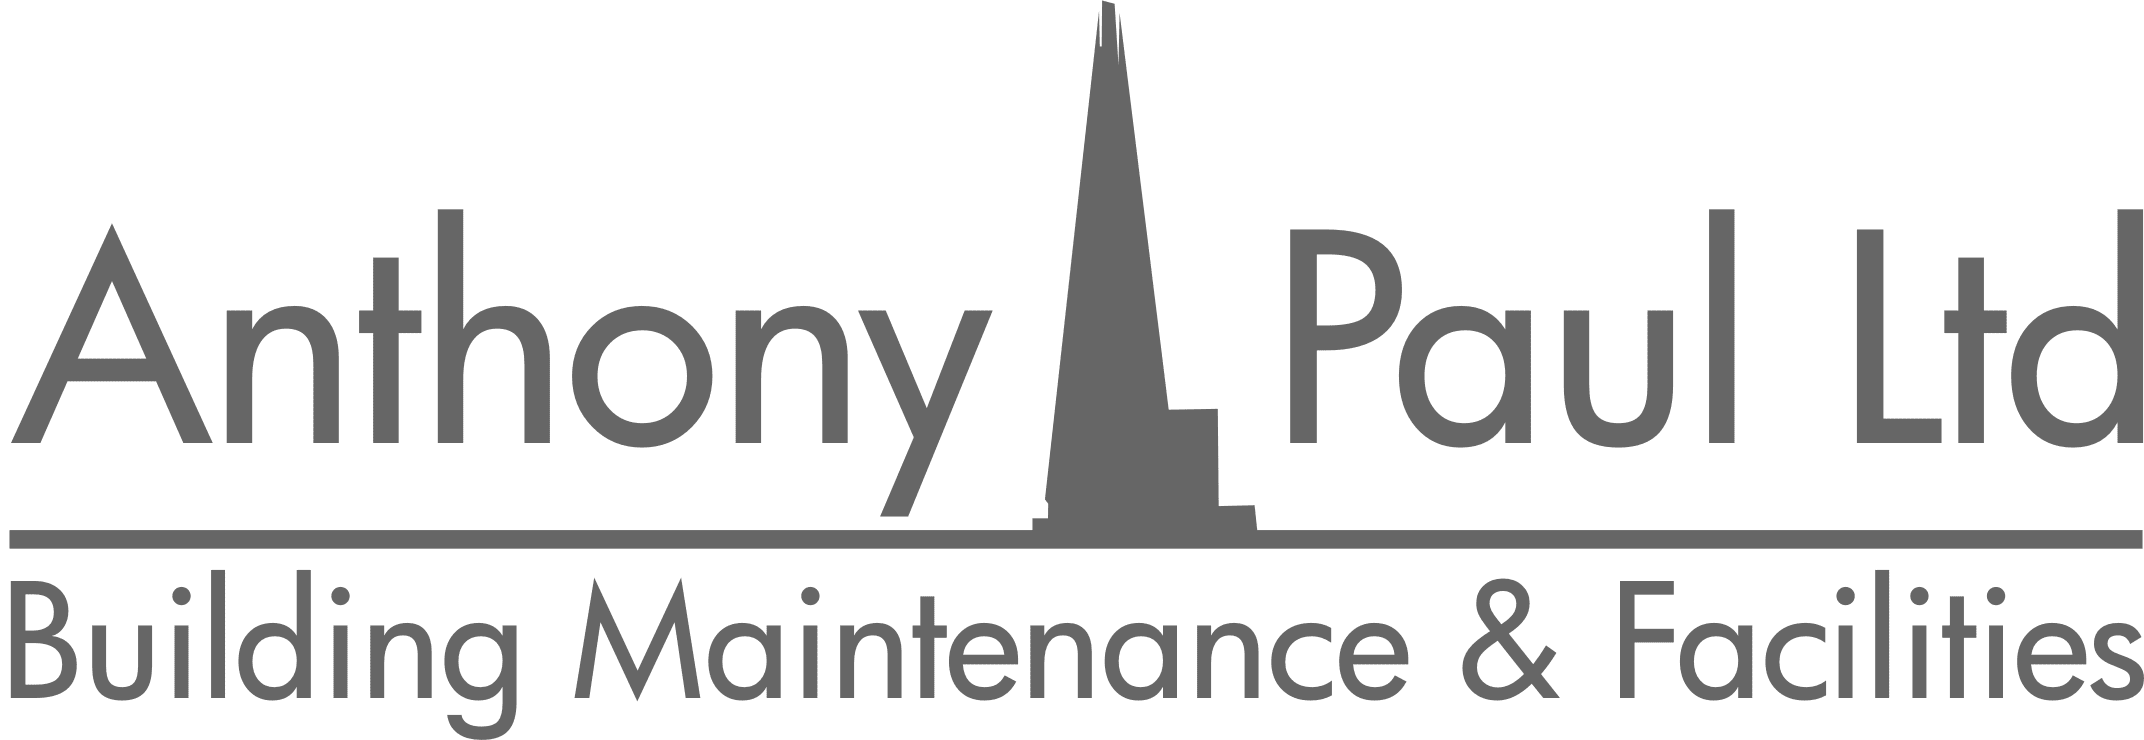 Anthony L Paul Building Maintenance Ltd